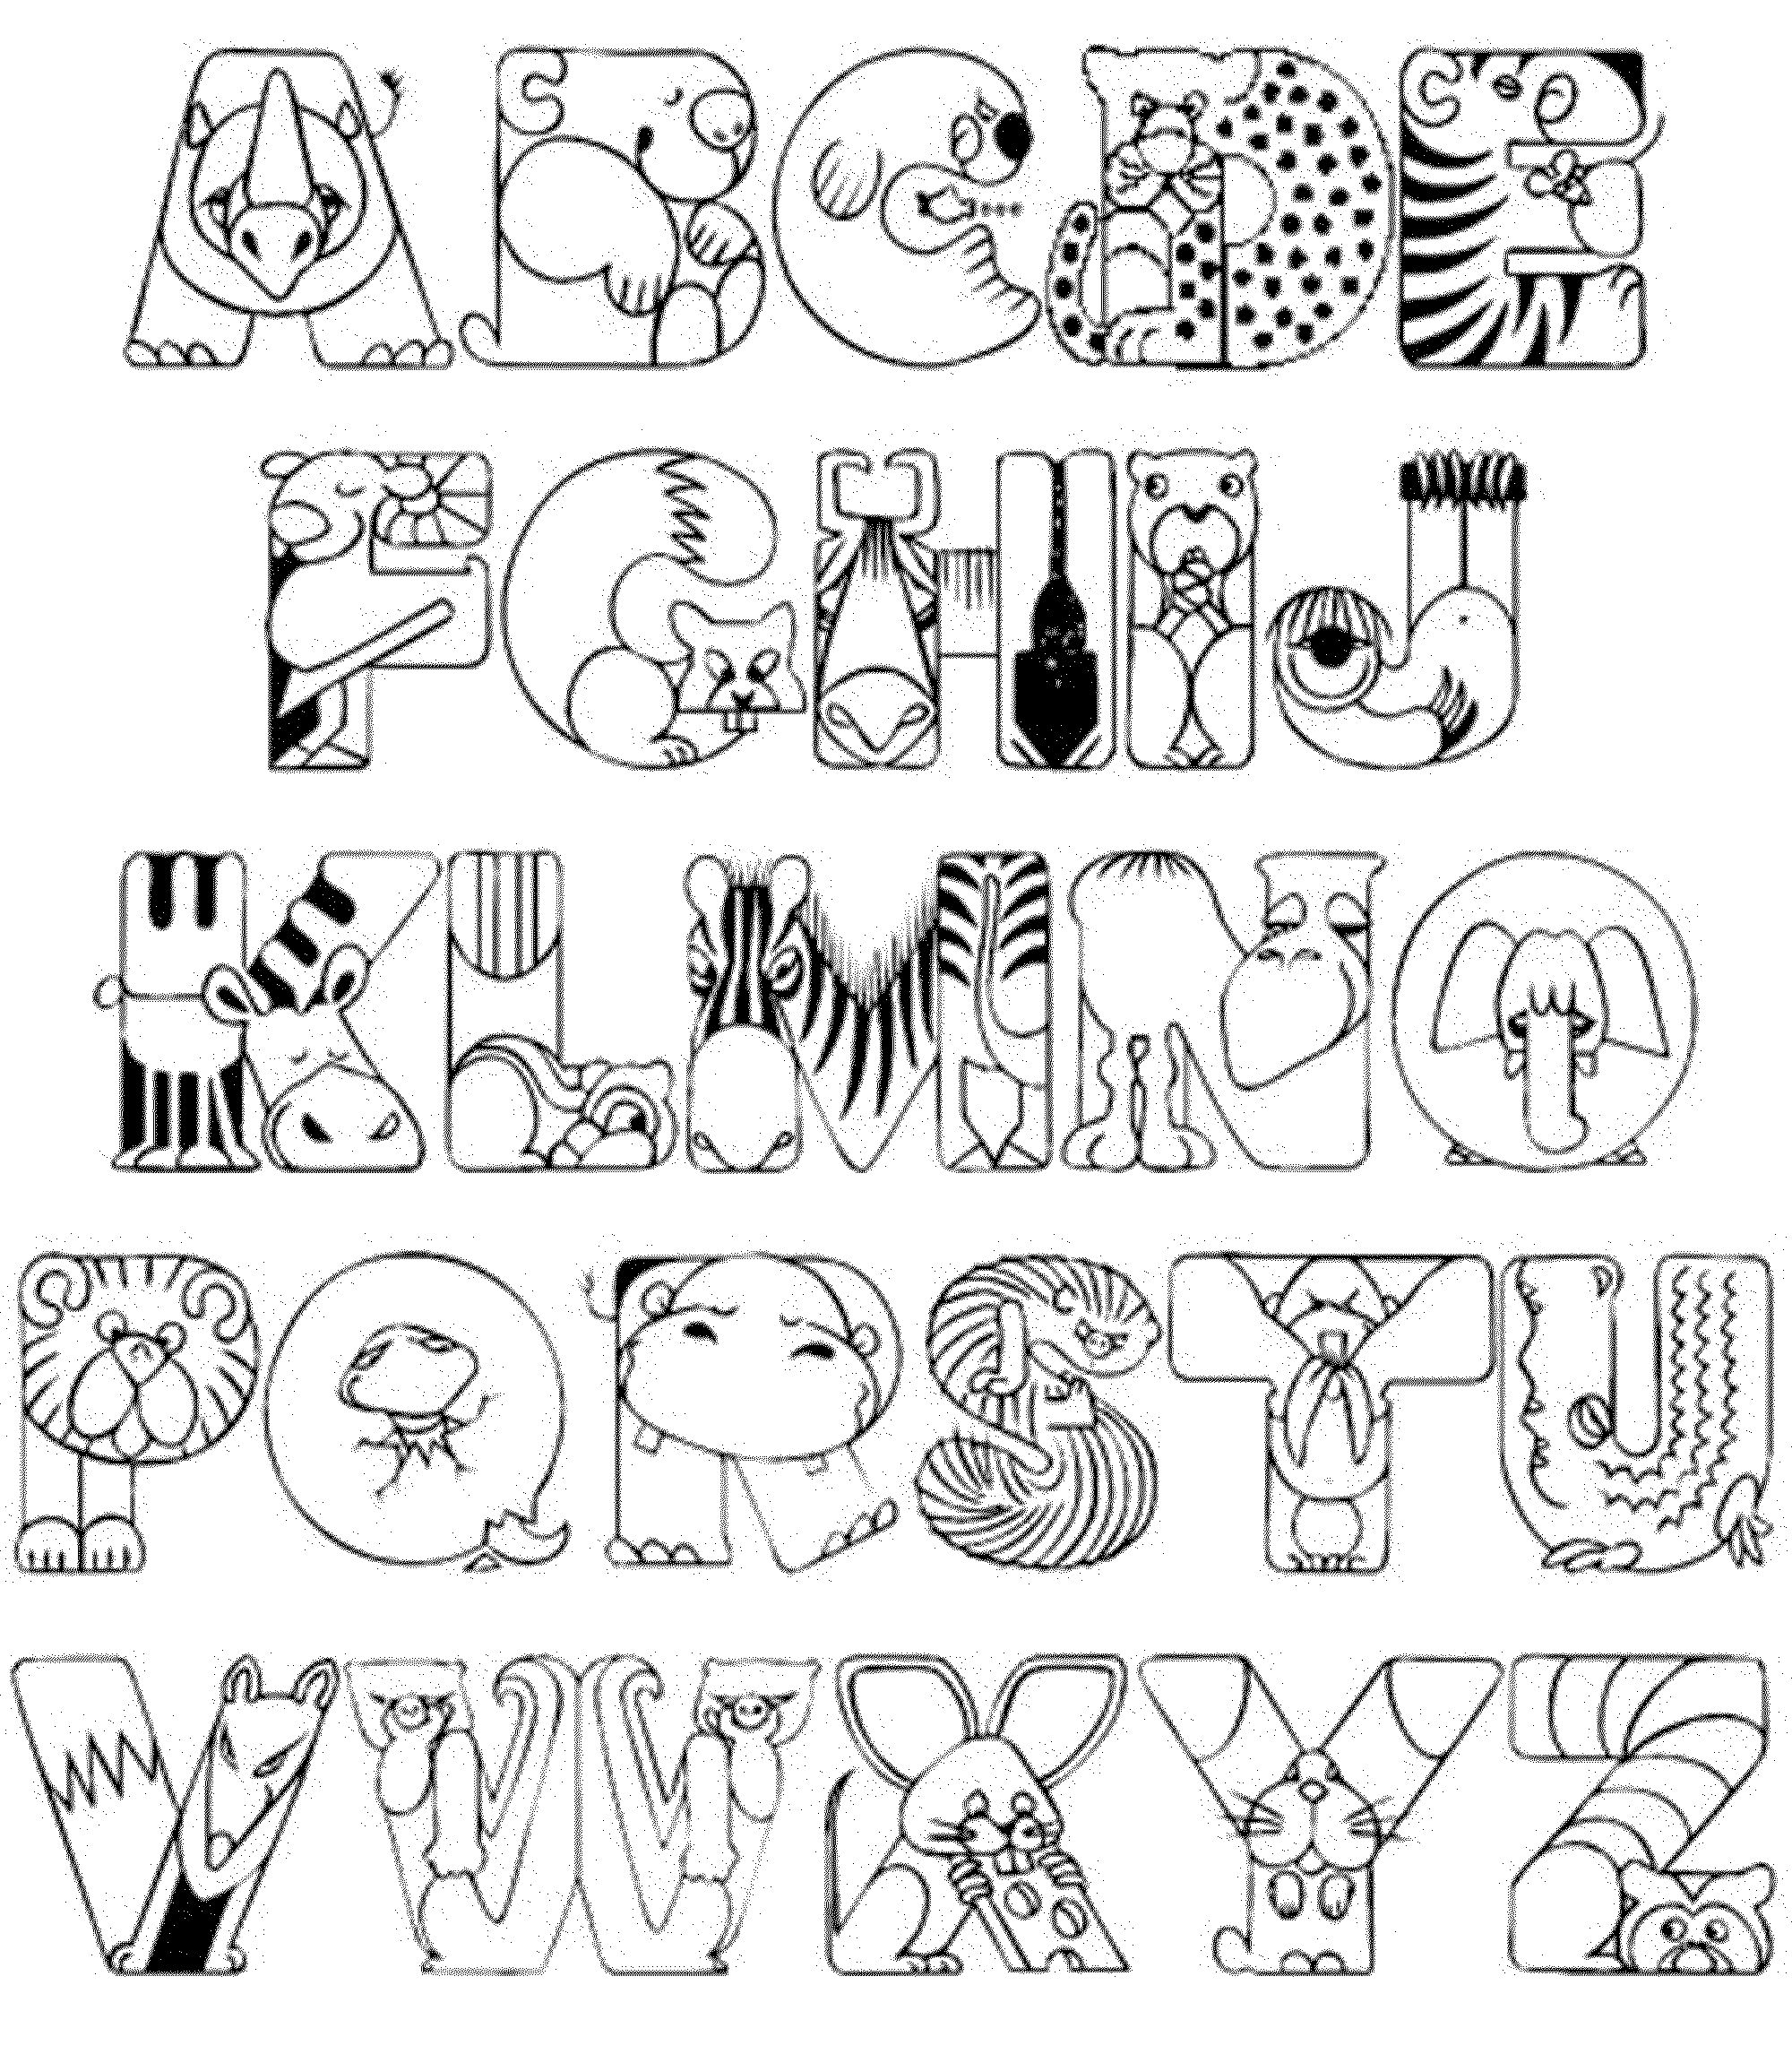 Alphabet Coloring Page A Z Coloring Page Pedia Kindergarten Coloring Pages Abc Coloring Pages Abc Coloring